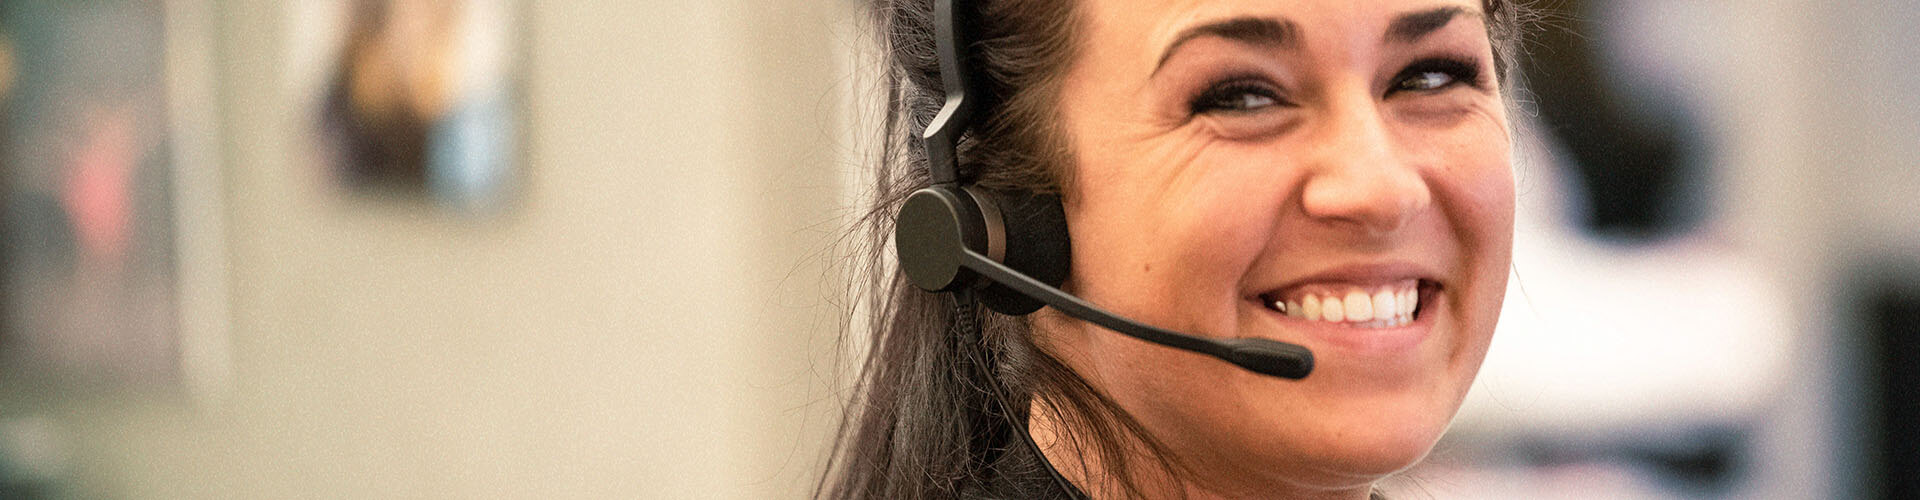 Woman with a big smile, and is wearing a headset